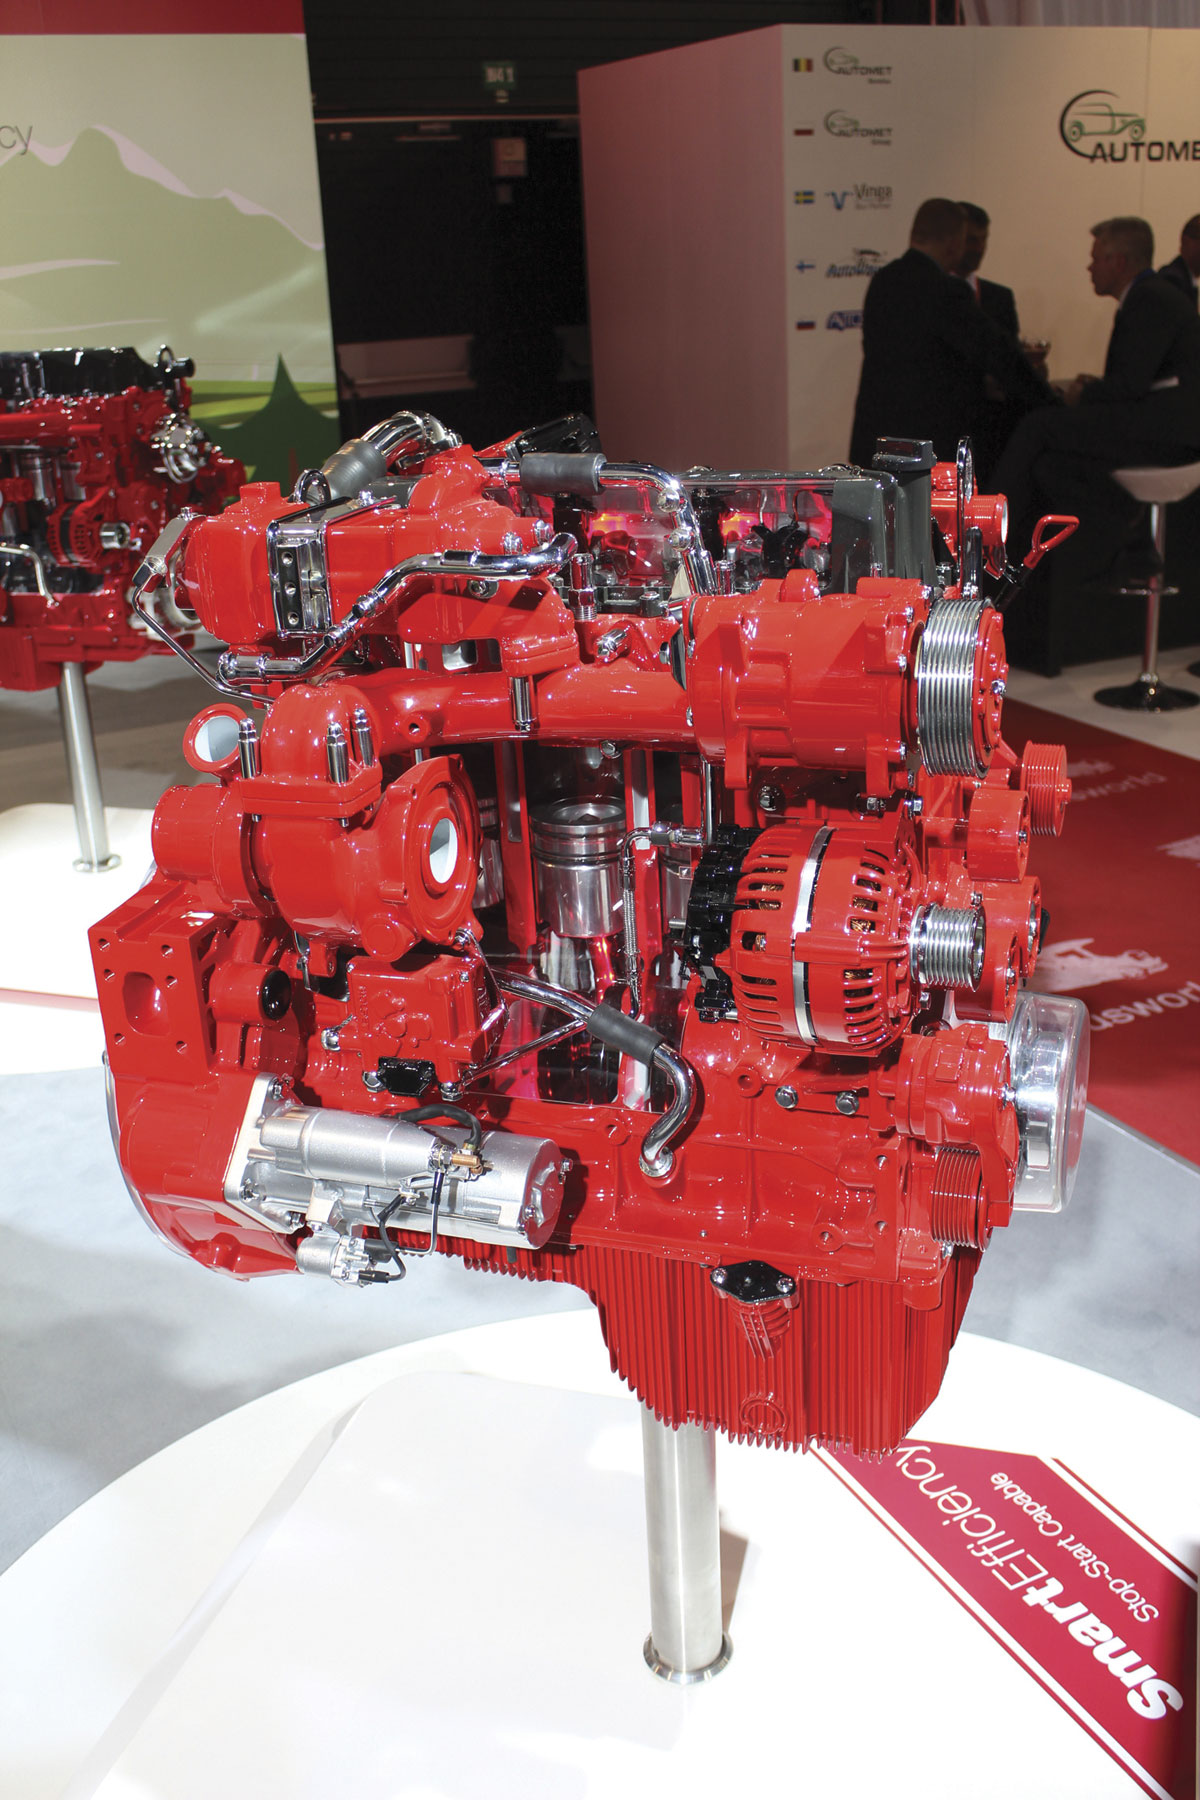 An ISB4.5 Smart Efficiency engine featuring the new Stop-Start technology